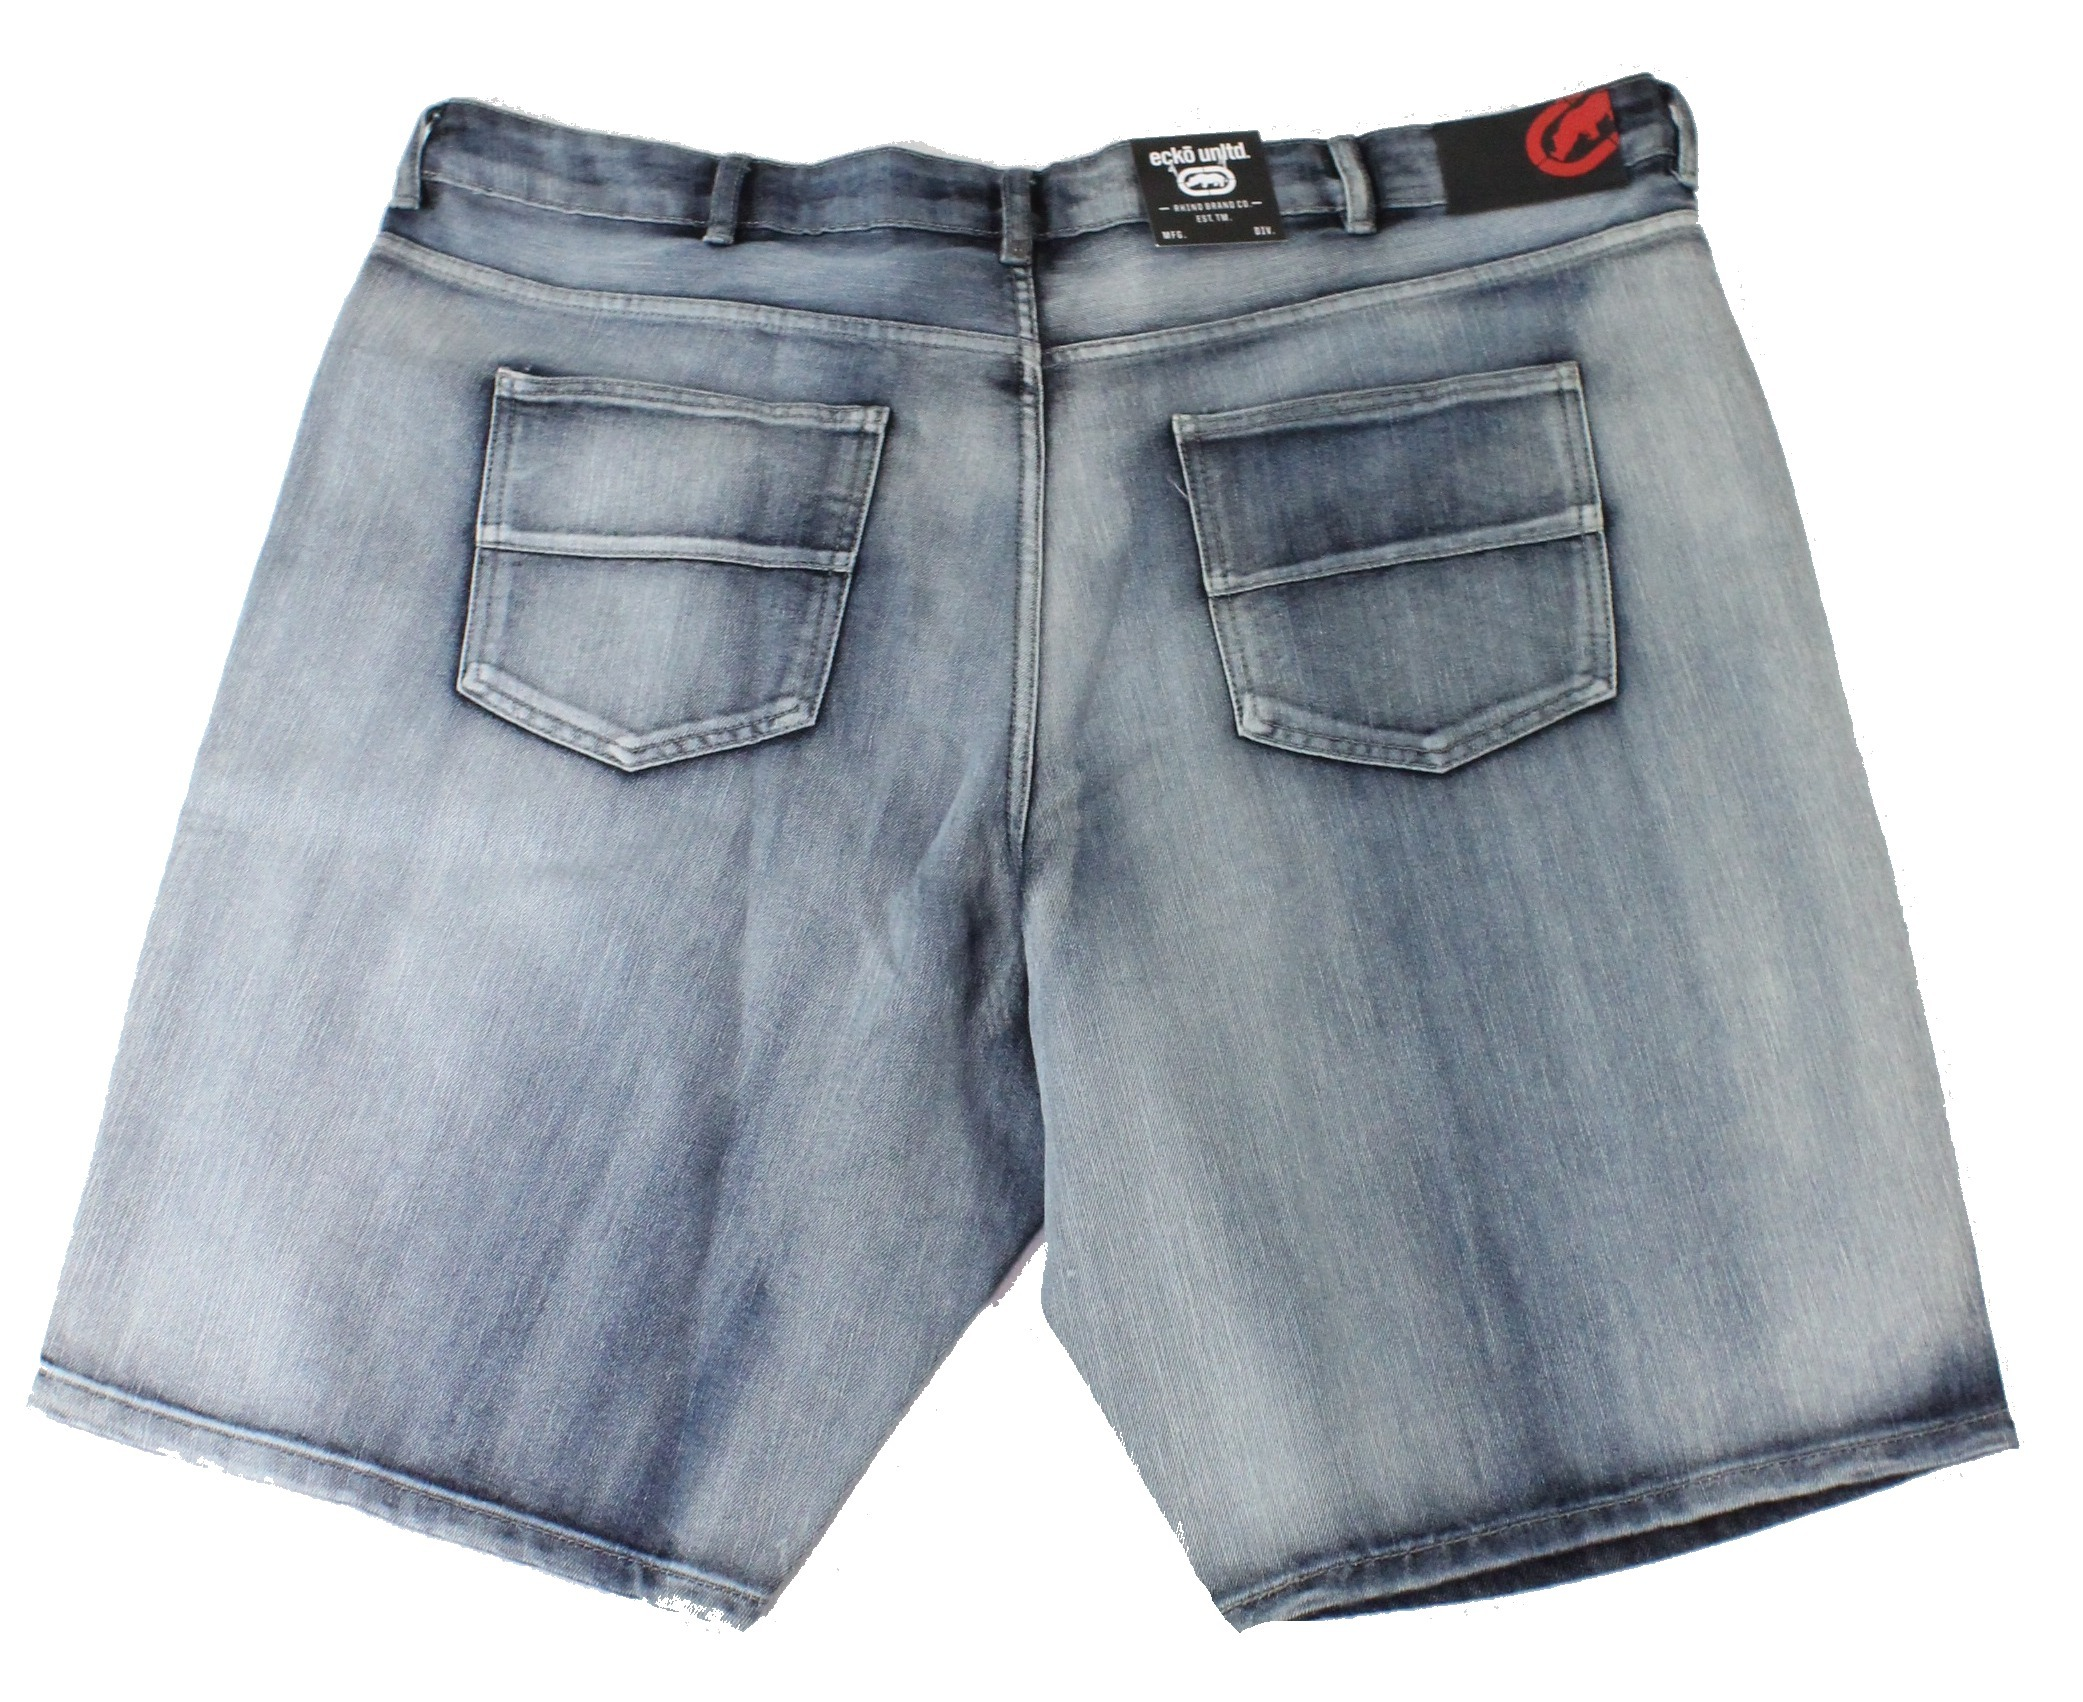 New-Ecko-Unltd-Mens-Shorts-Dark-Wash-Blue-Size-44-Denim-759-Relaxed-Fit-48-213 thumbnail 2